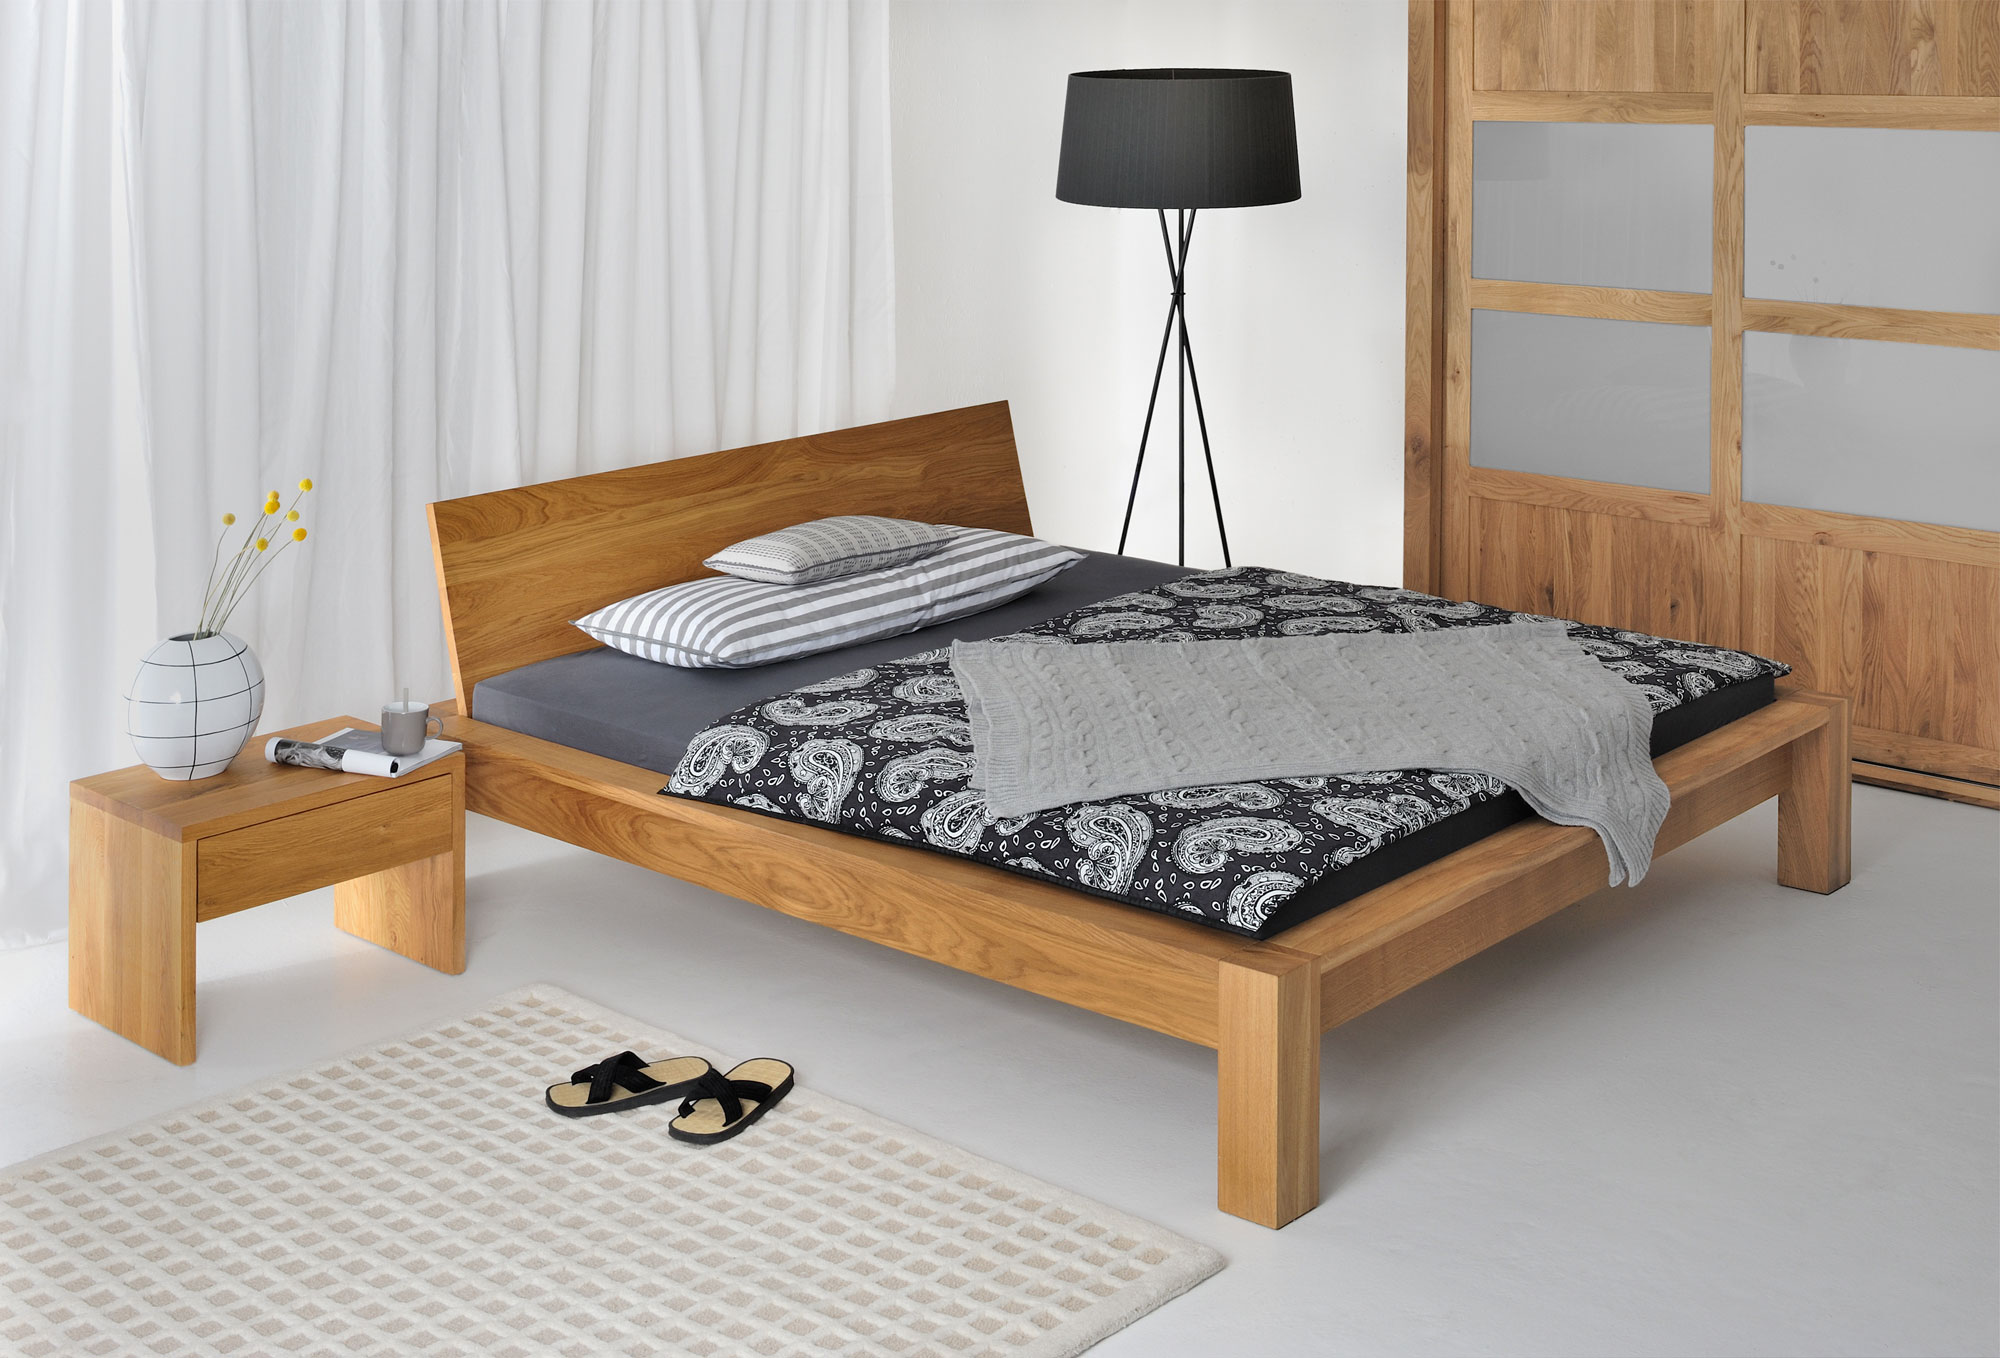 Bett Design. Elegant Betthaupt Ideen Fur Design On In Bezug Auf Bett ...